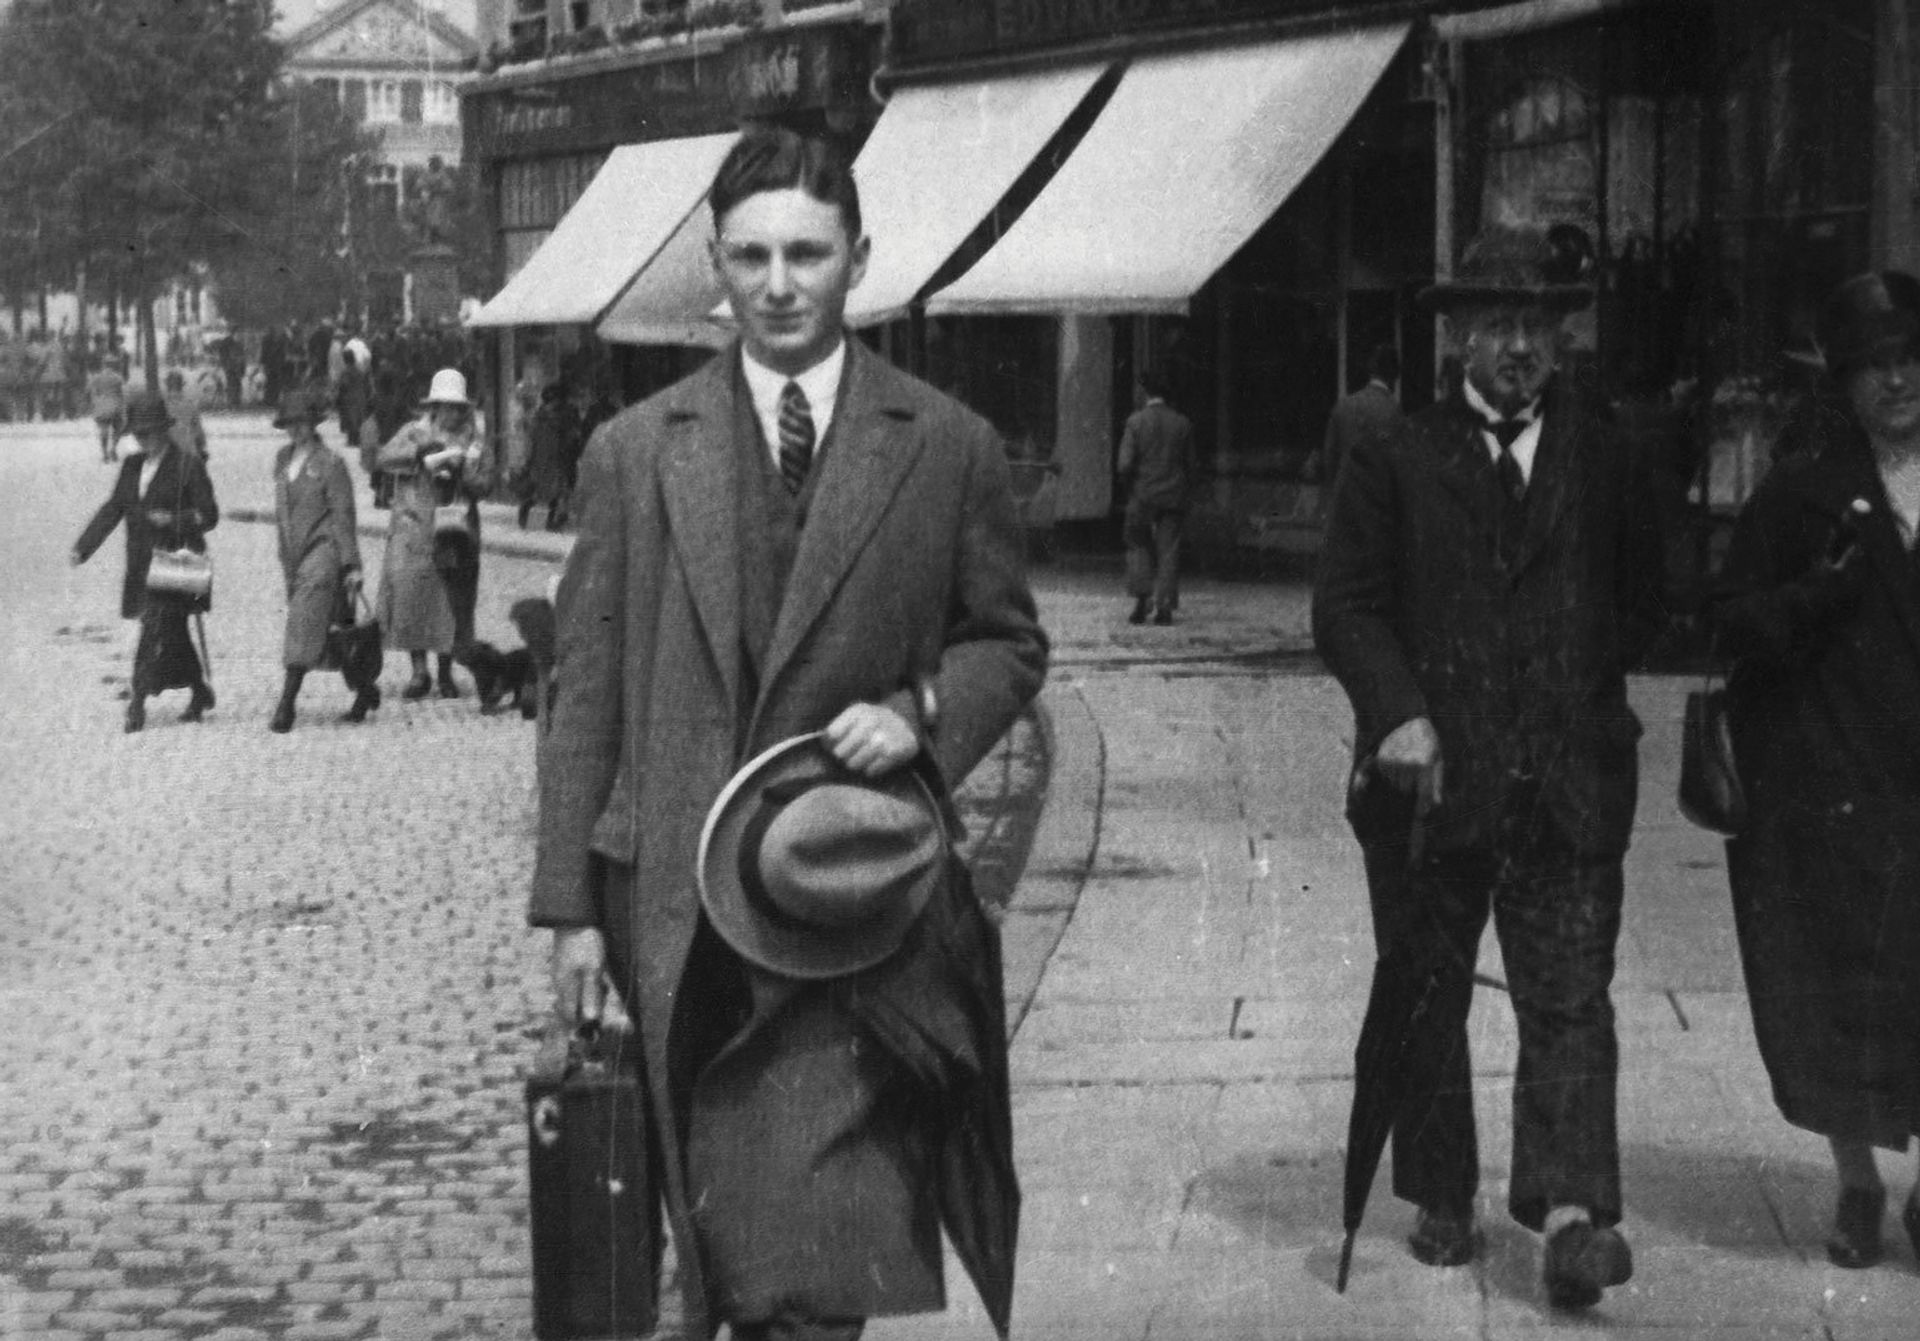 Within a few years of taking over his father's gallery in Dusseldorf, Max Stern, pictured here as a young man, would be forced to flee Nazi Germany. Courtesy of Max Stern Art Restitution Project